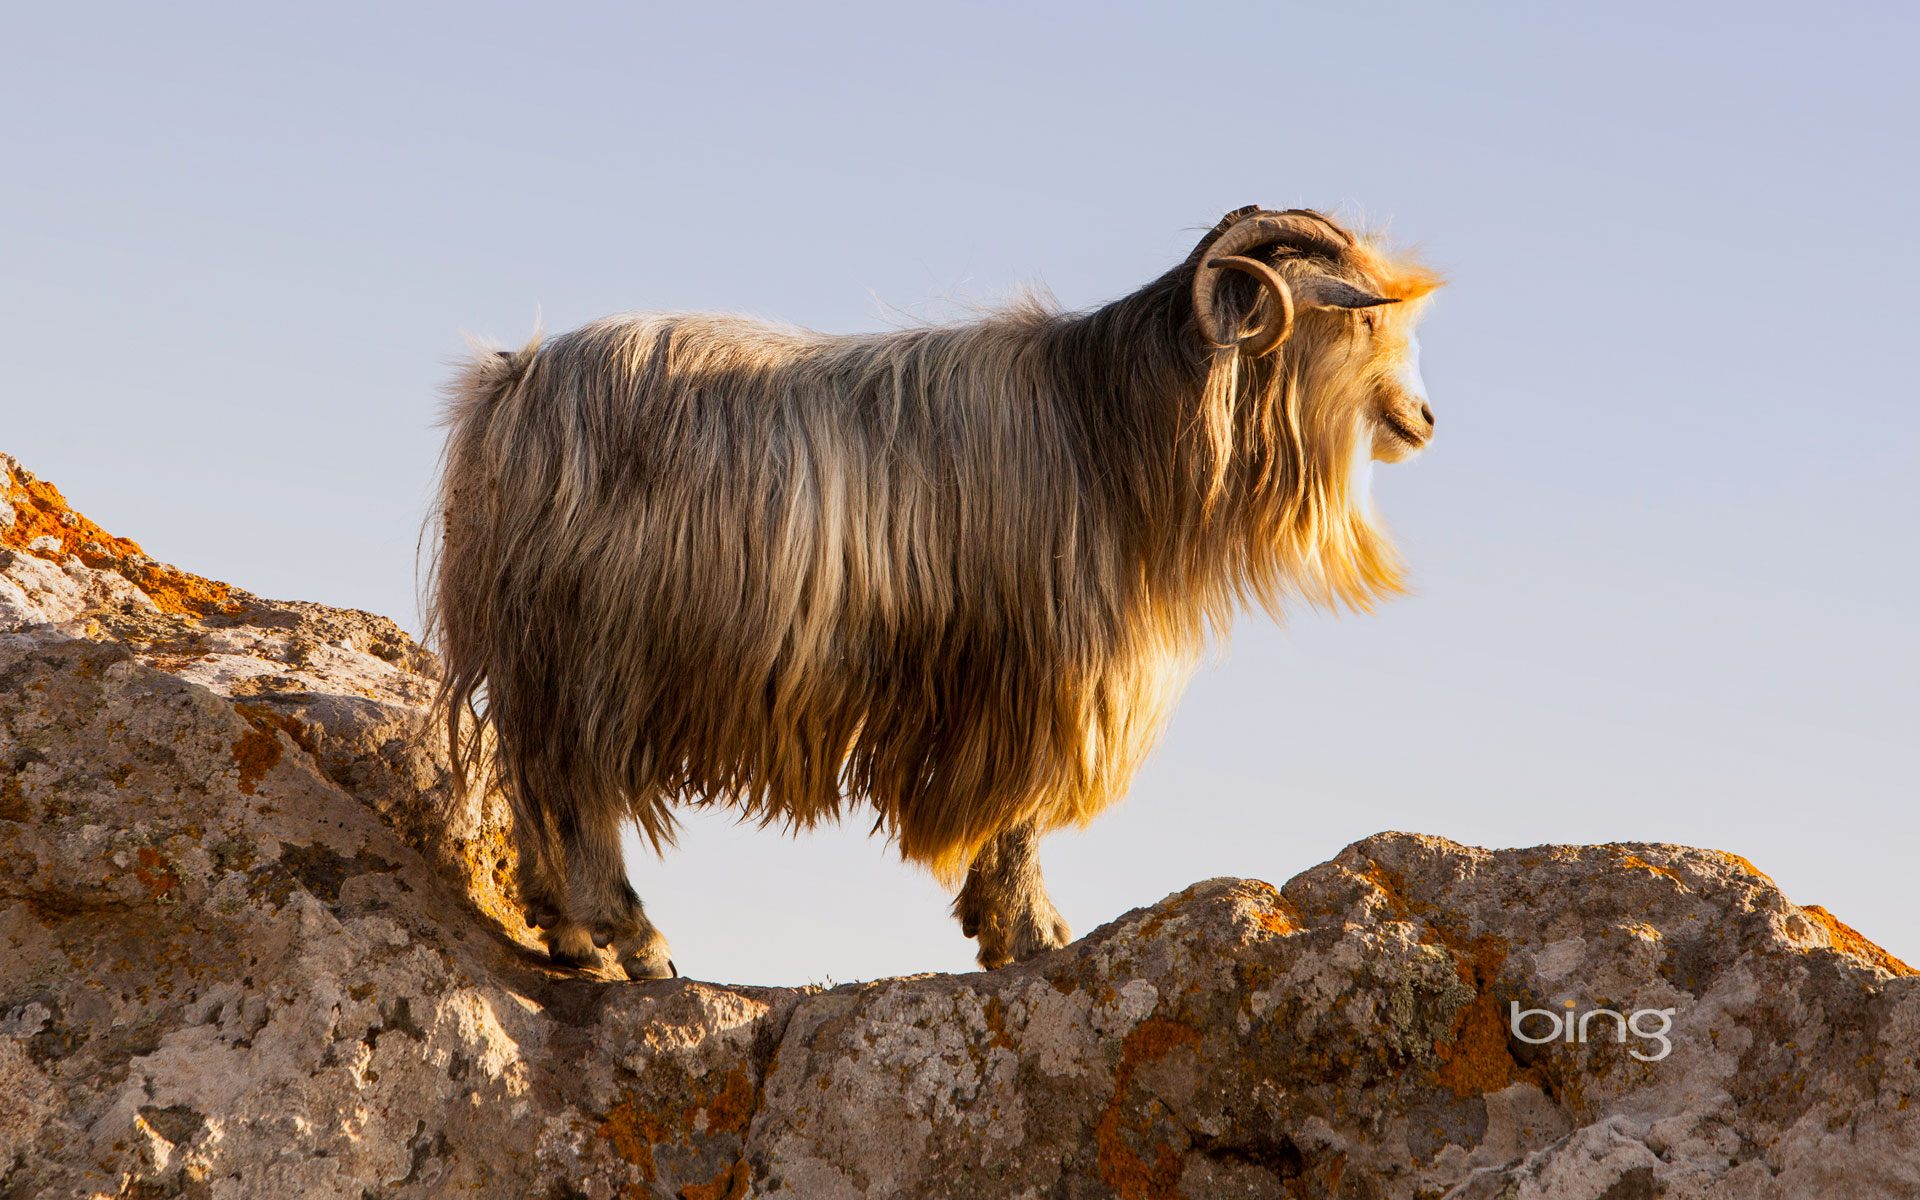 A goat on the castle rocks in Myrina, on the isle of Lemnos, Greece